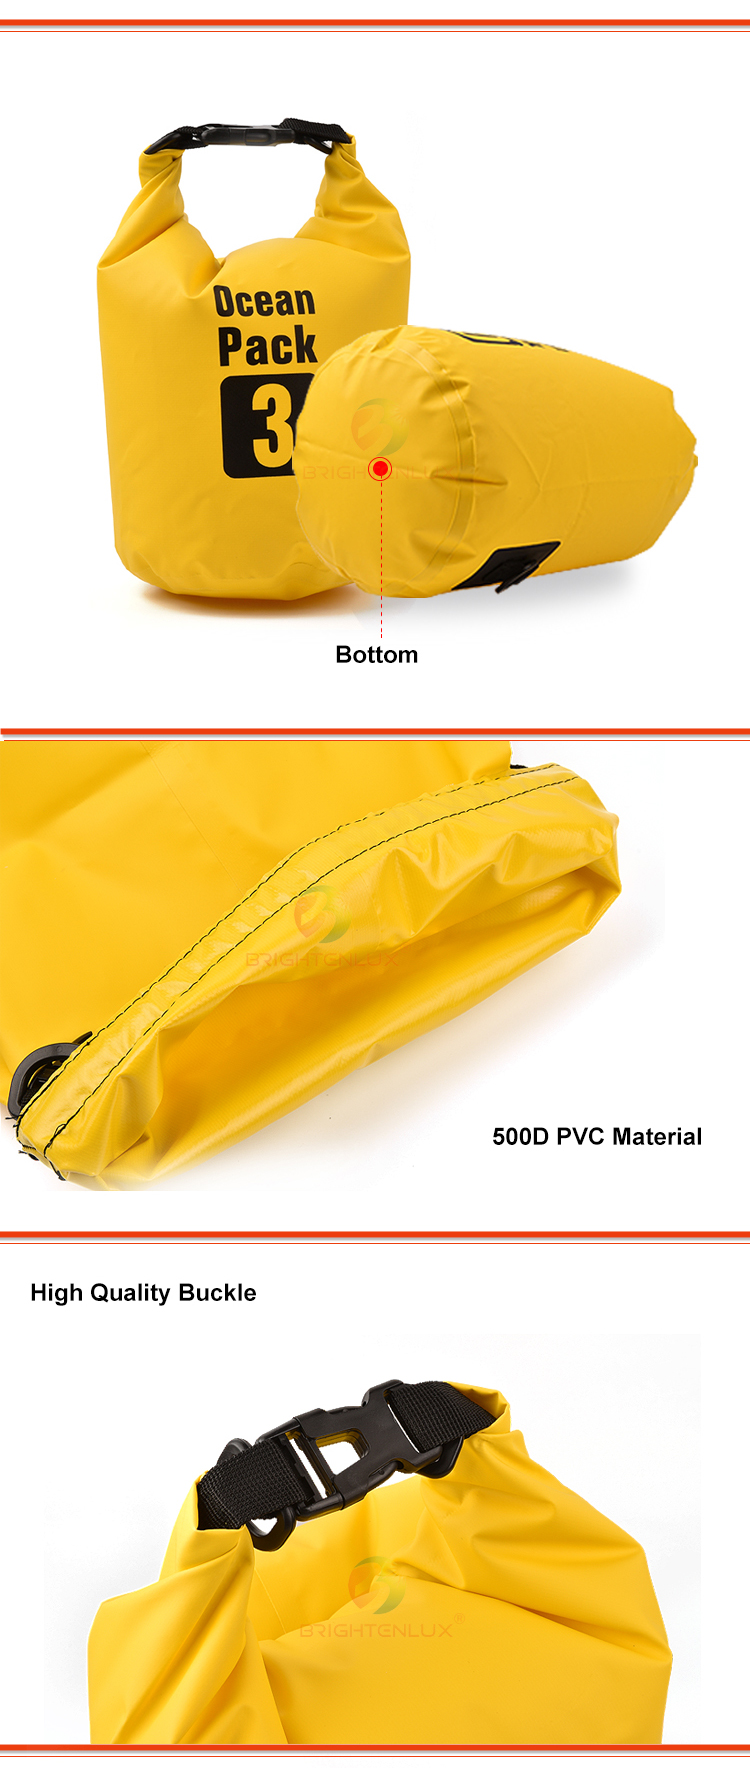 2L 3L 5L 8L 10L 15L 20L 30L 40 Boating Floating Hiking Kayak Wet Custom Logo Outdoor Polyester PVC Ocean Pack Waterproof Dry Bag